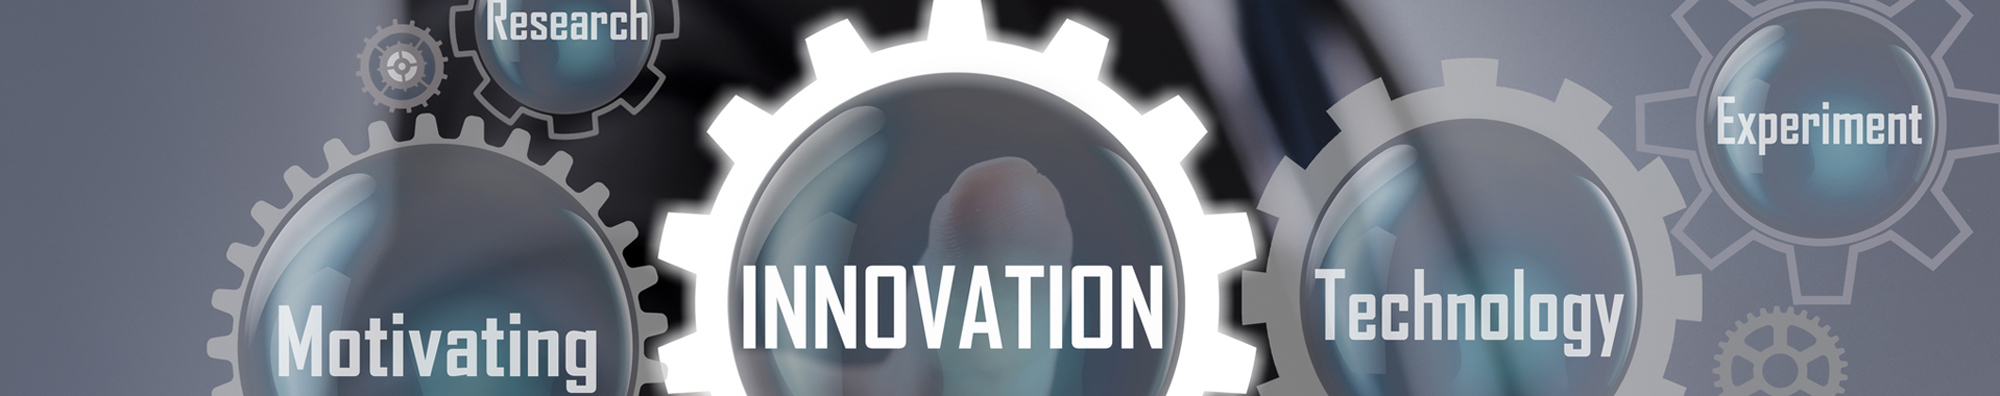 Research Motivating Innovation Technology Experience